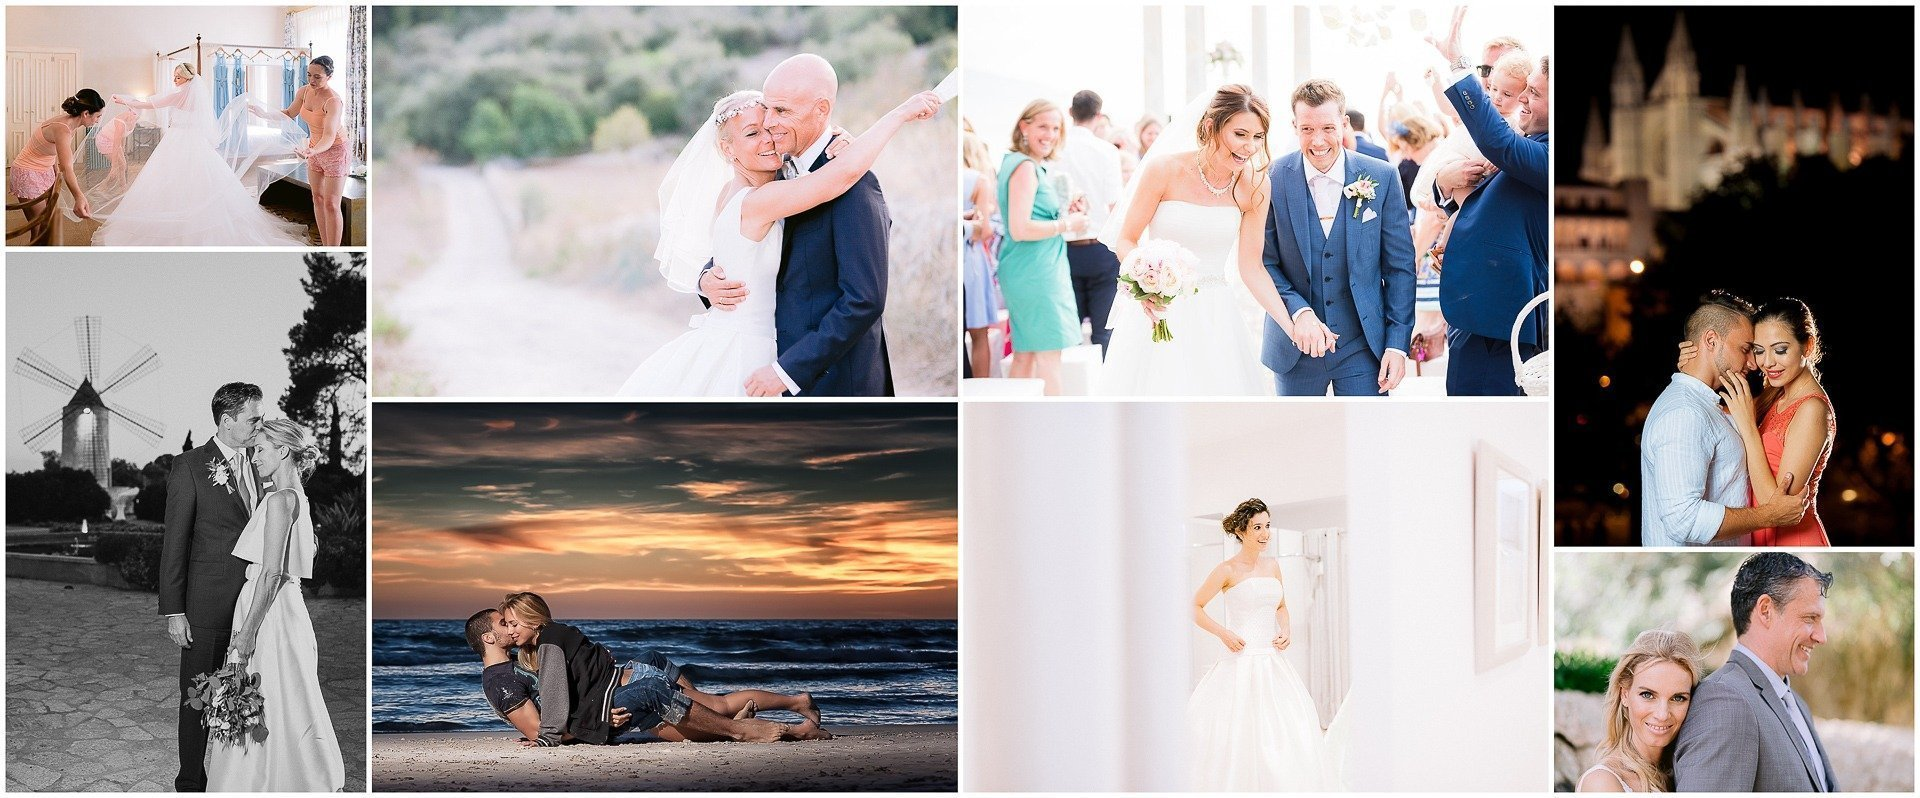 Moments Wedding Planner organizó una preciosa boda en la Finca Son Marroig